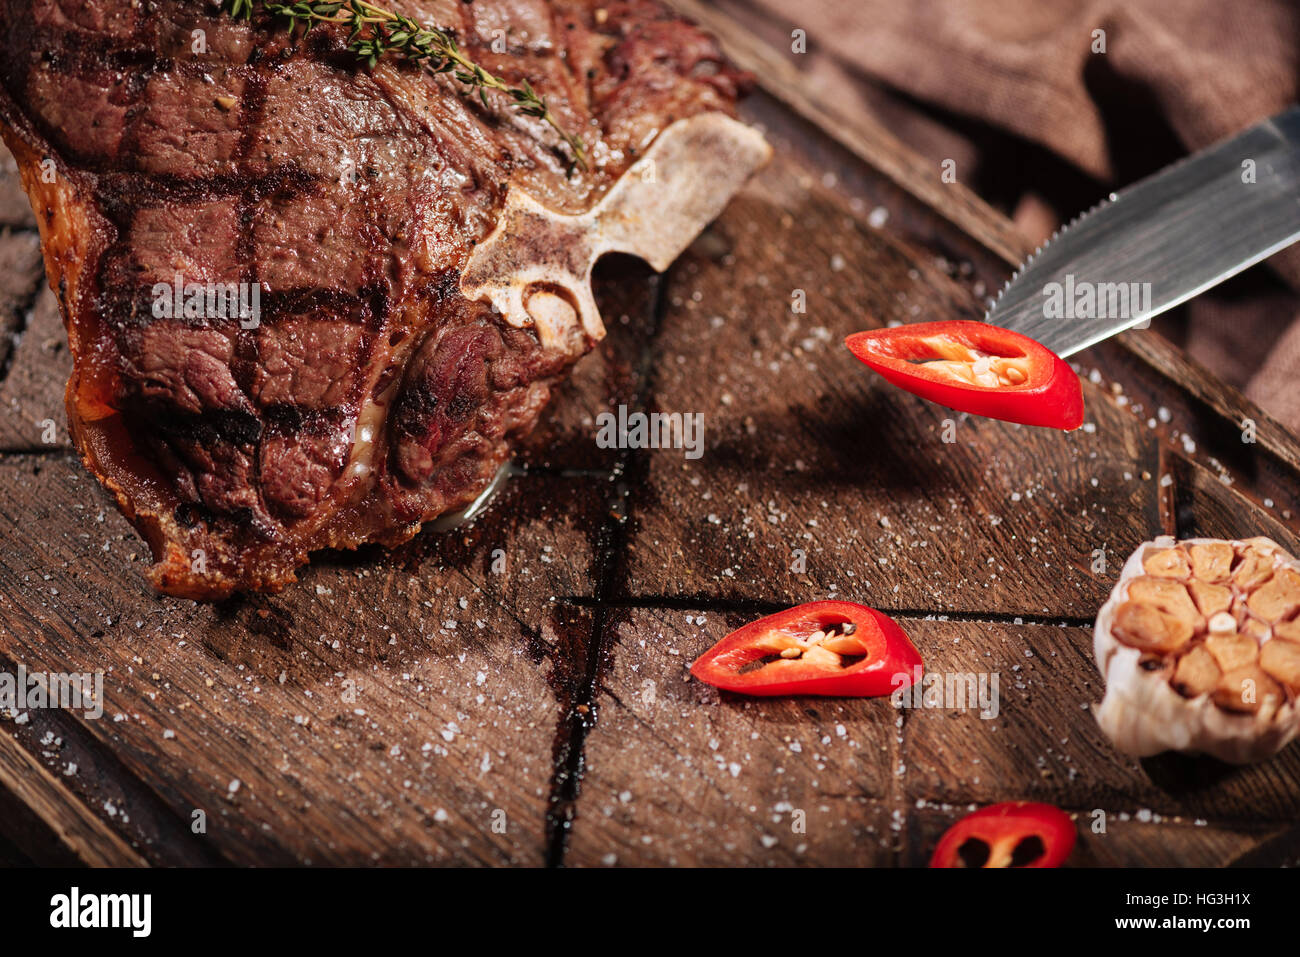 Top view of a steak being cooked with vegetables - Stock Image